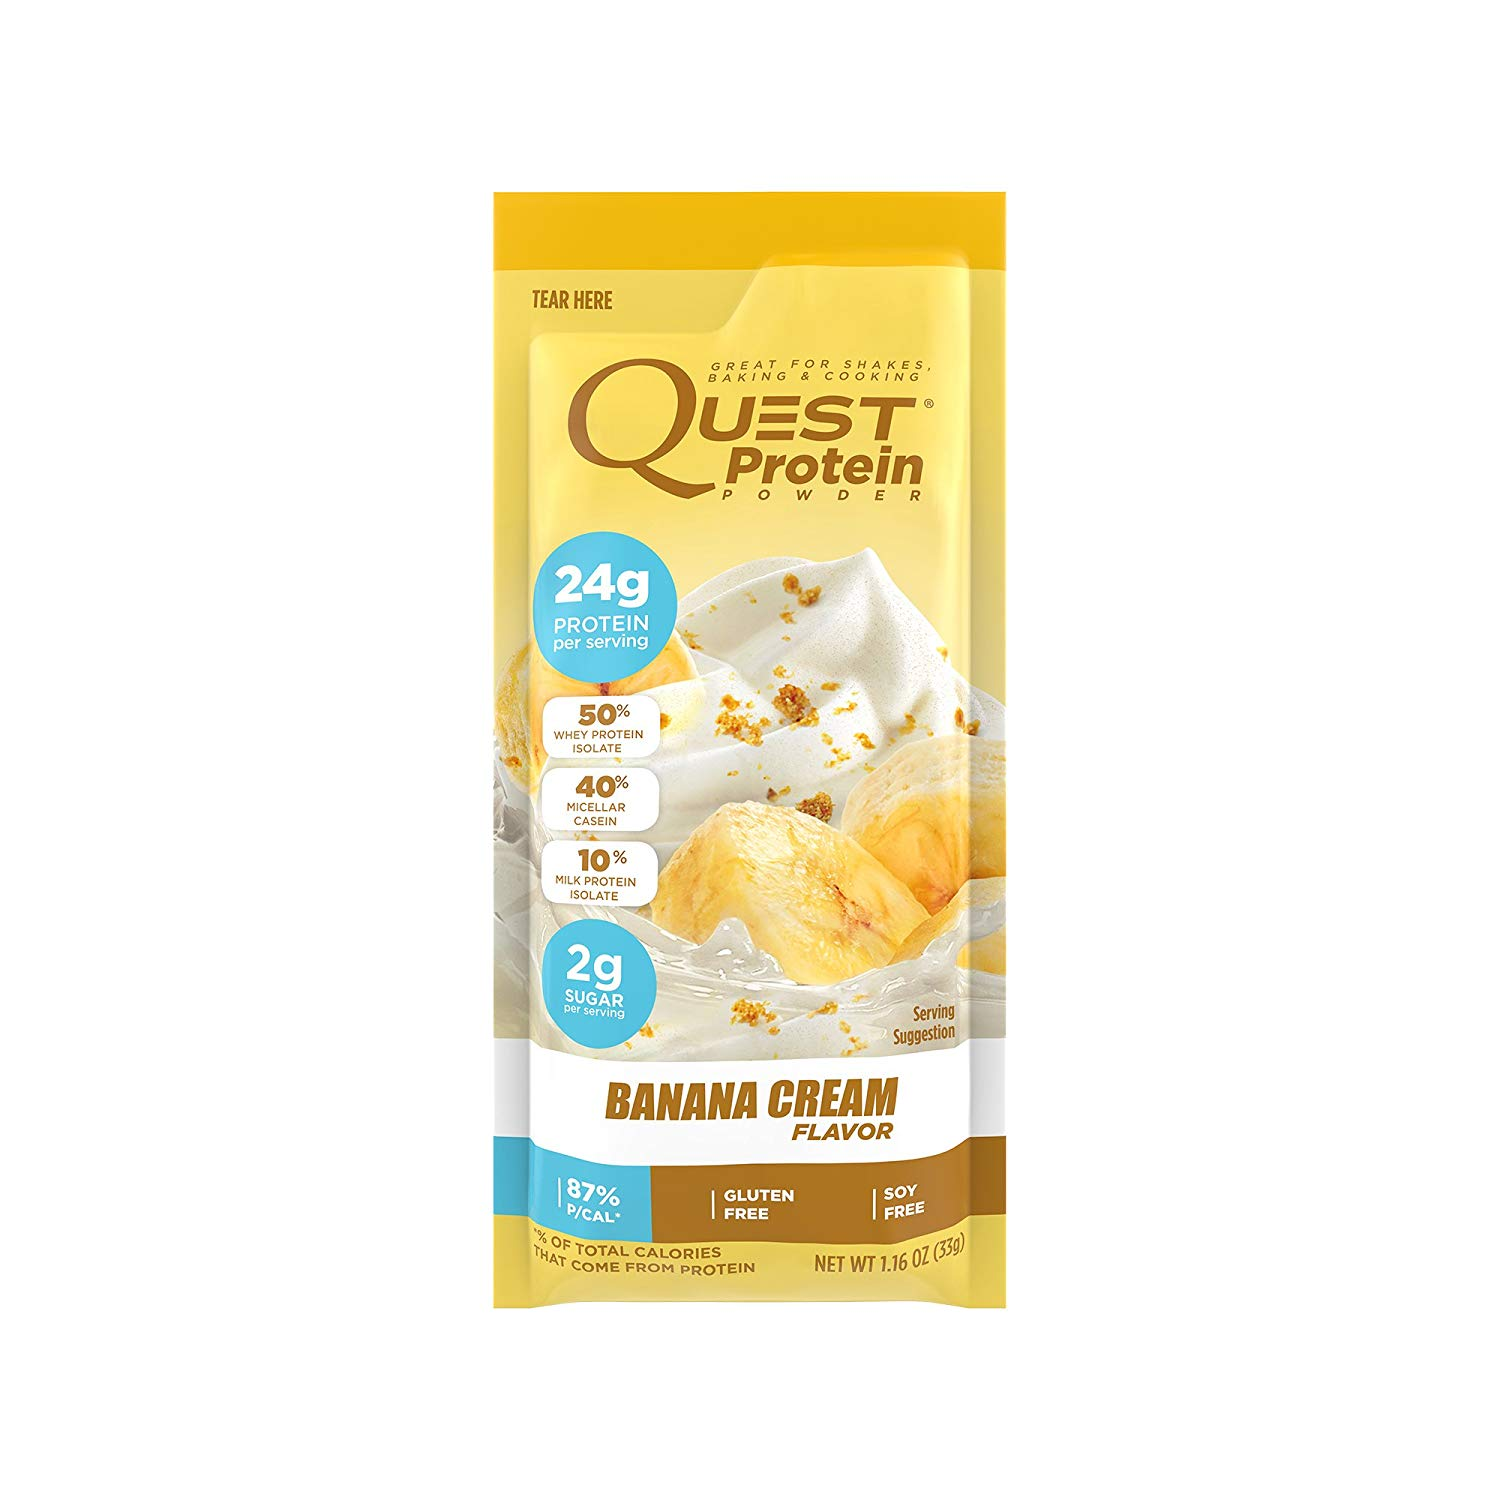 Quest Nutrition Protein Powder, Banana Cream, 21g Protein, 3g Net Carbs, 84% P/Cals, 0.99oz Packet, 12 Count, High Protein, Low Carb, Gluten Free, Soy Free, Packaging May Vary